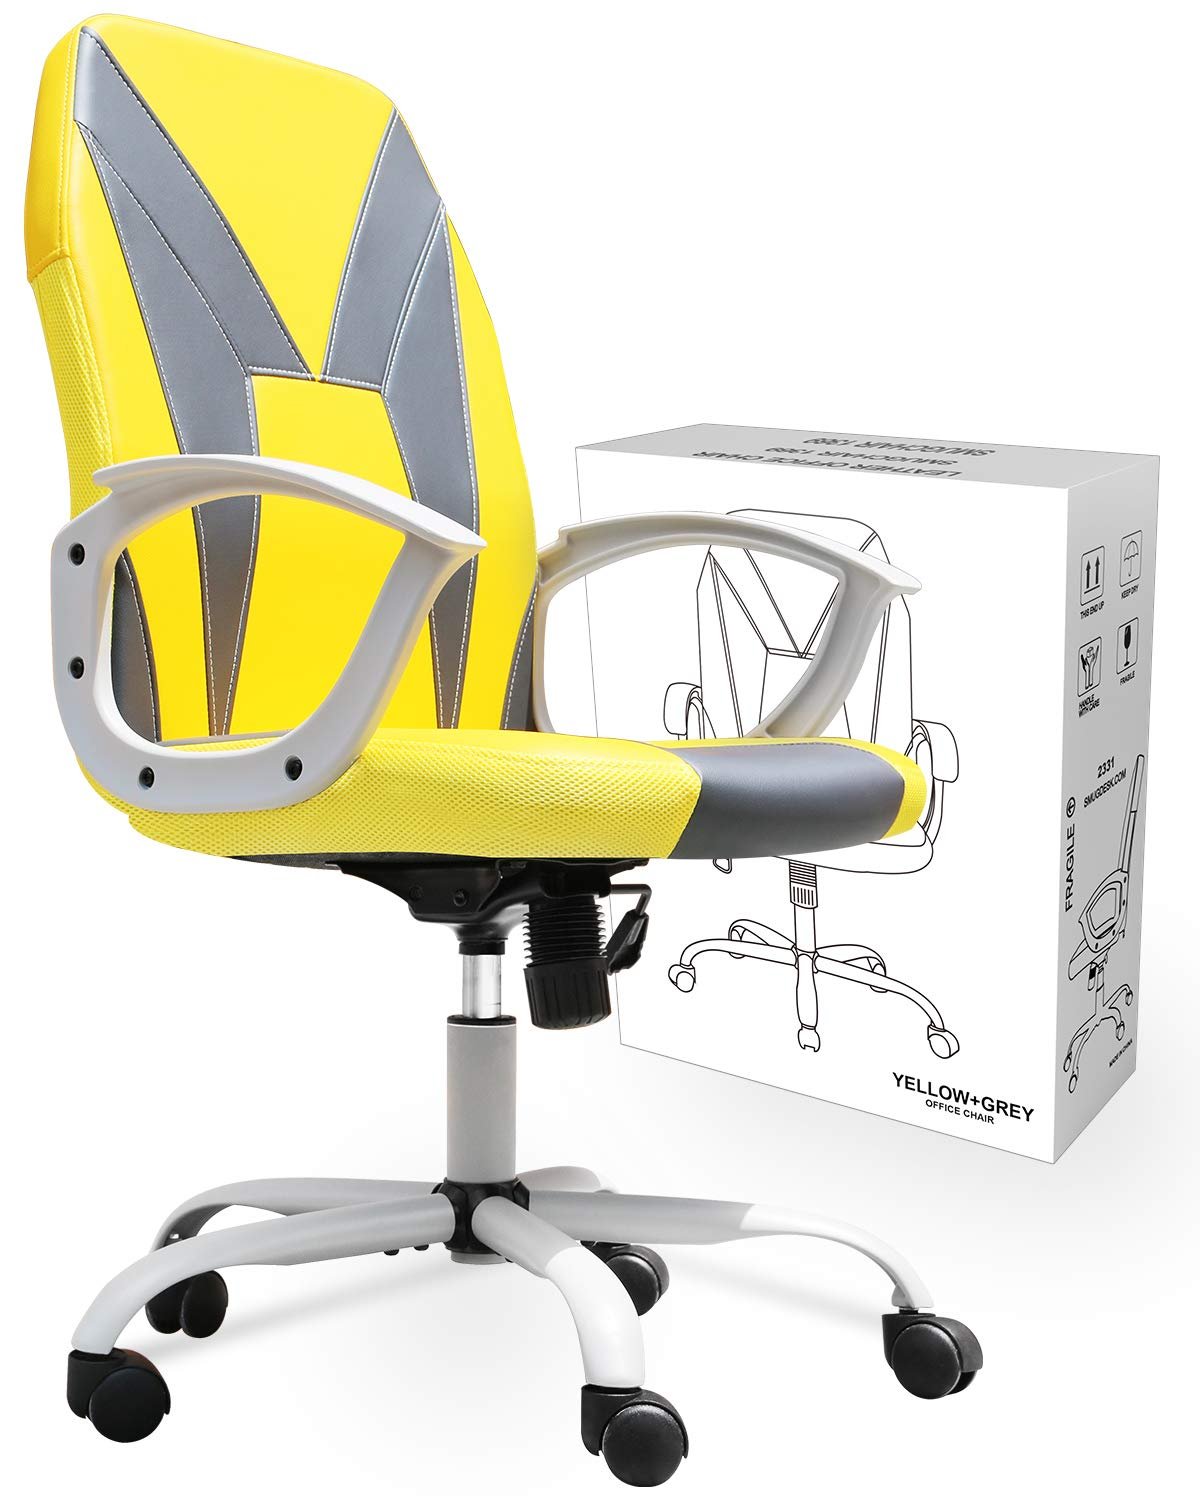 Smugchair desk Chair Ergonomic Office Chair task Chair Executive Bonded Leather Computer Chair, Yellow